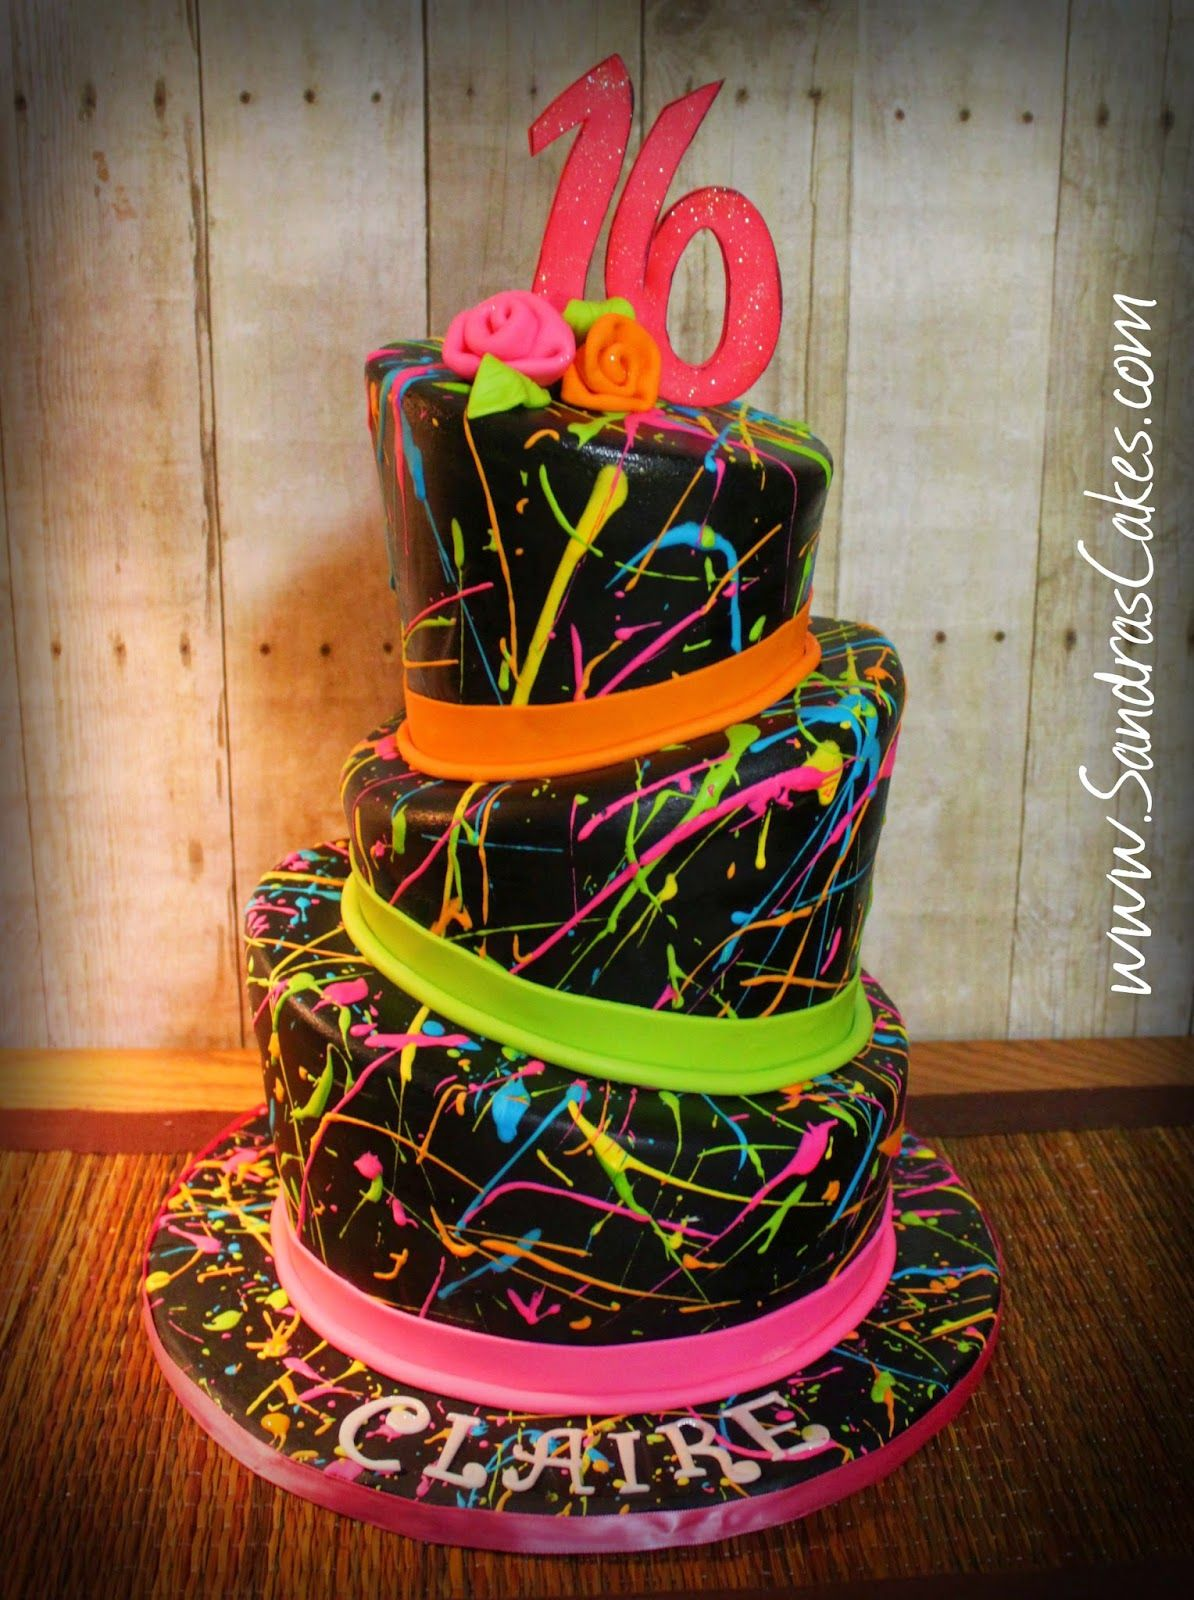 Sandras Cakes Paint Splatter Cake Holidays Special Occasions